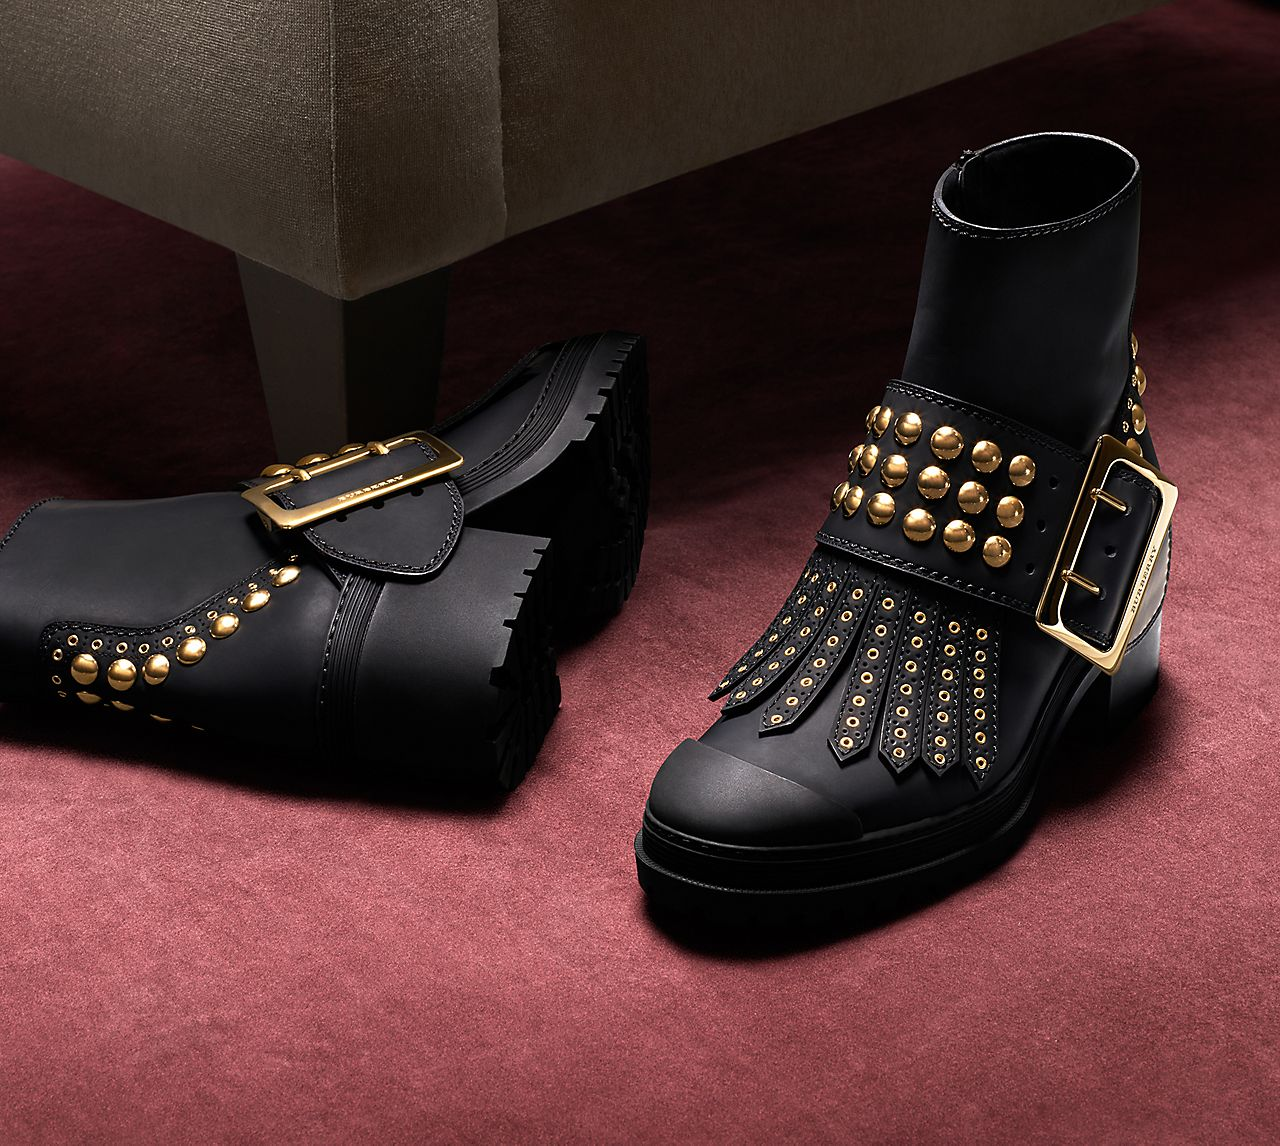 New in: The Buckle Boot